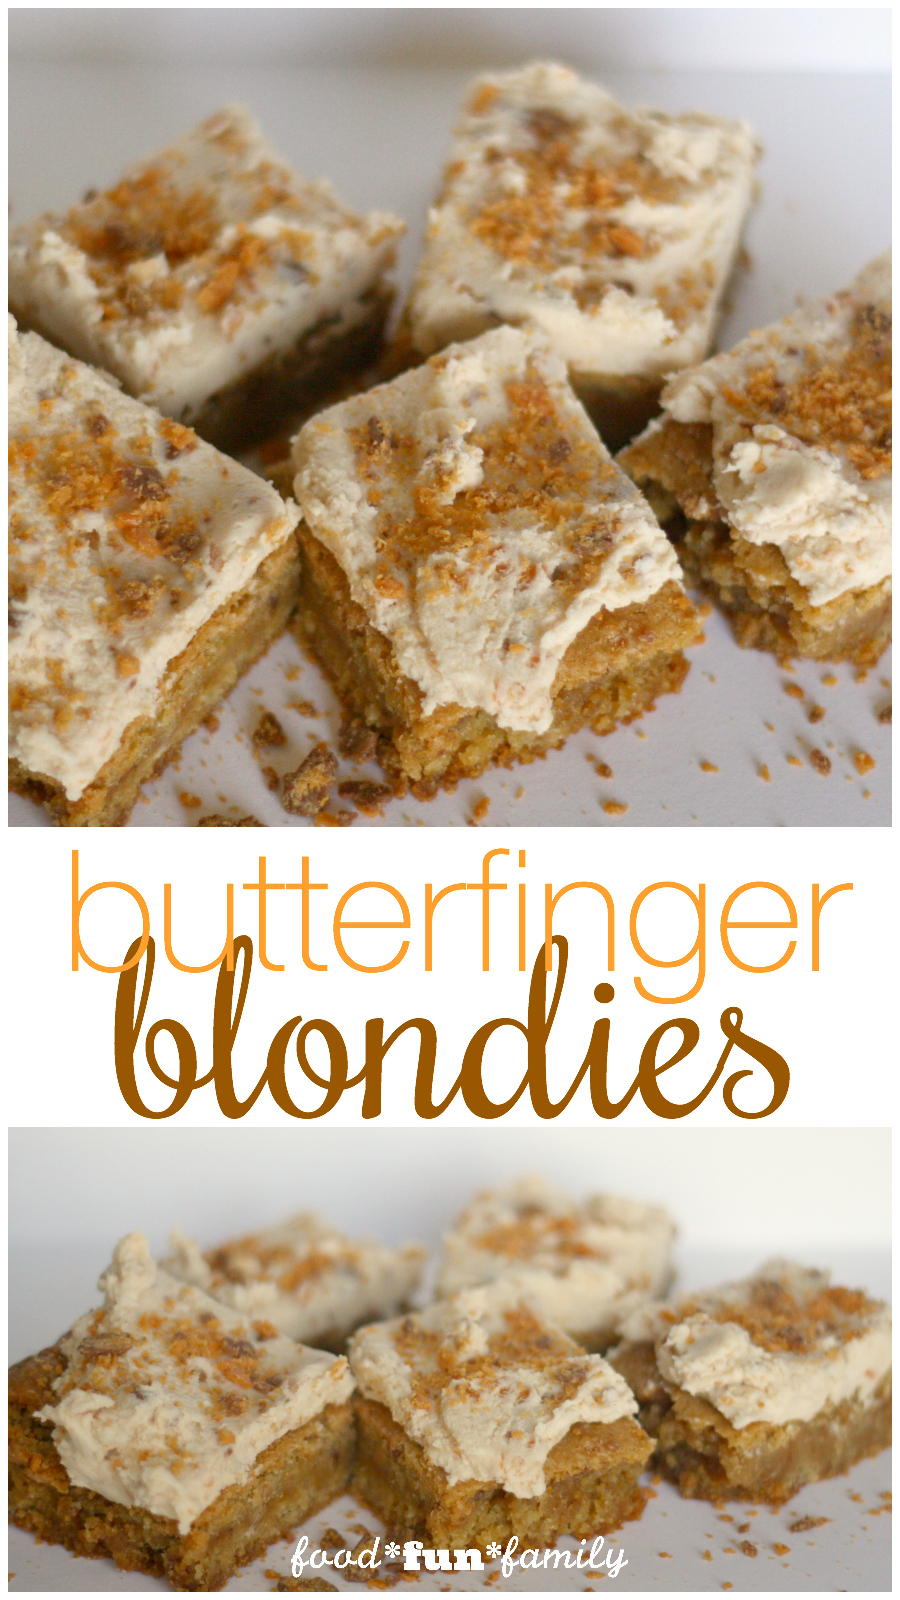 Butterfinger blondies - forget brownies! These blondies made with leftover Halloween Butterfinger candies is the BEST!